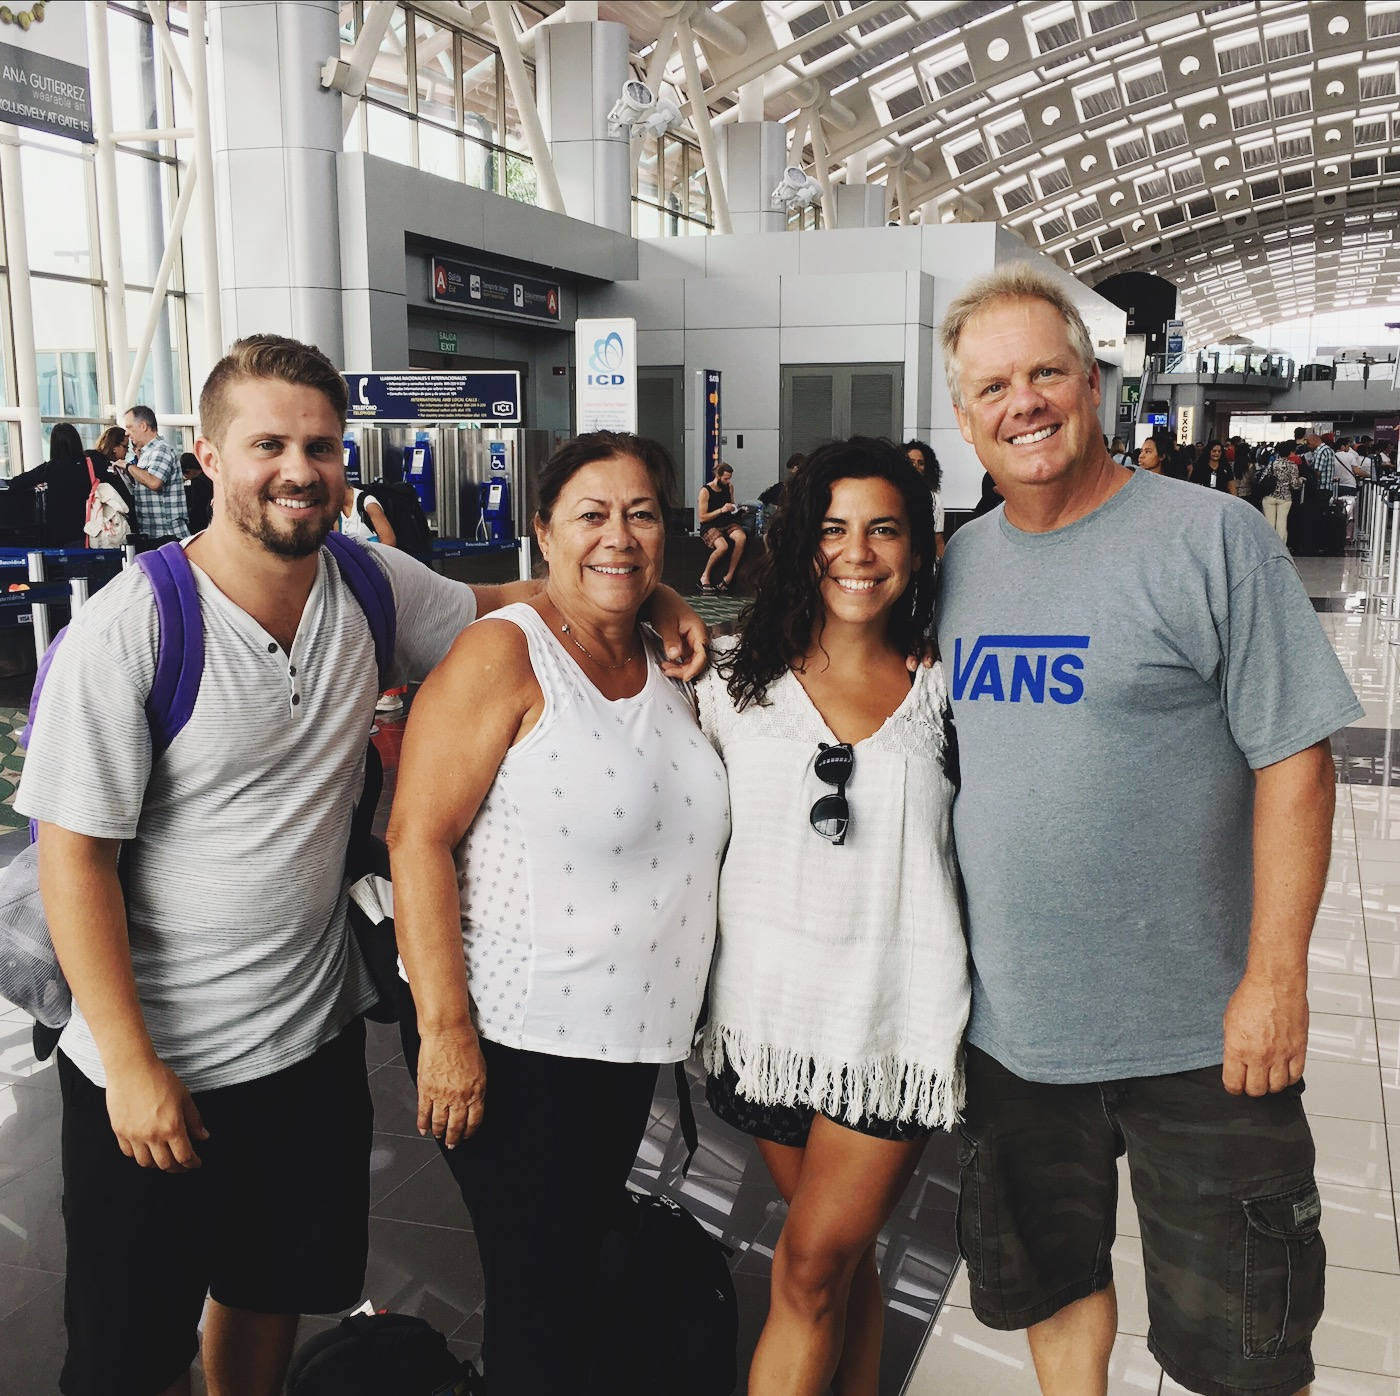 Erin's brother Kevin, mother Laura, and stepdad Scott in the San Jose airport